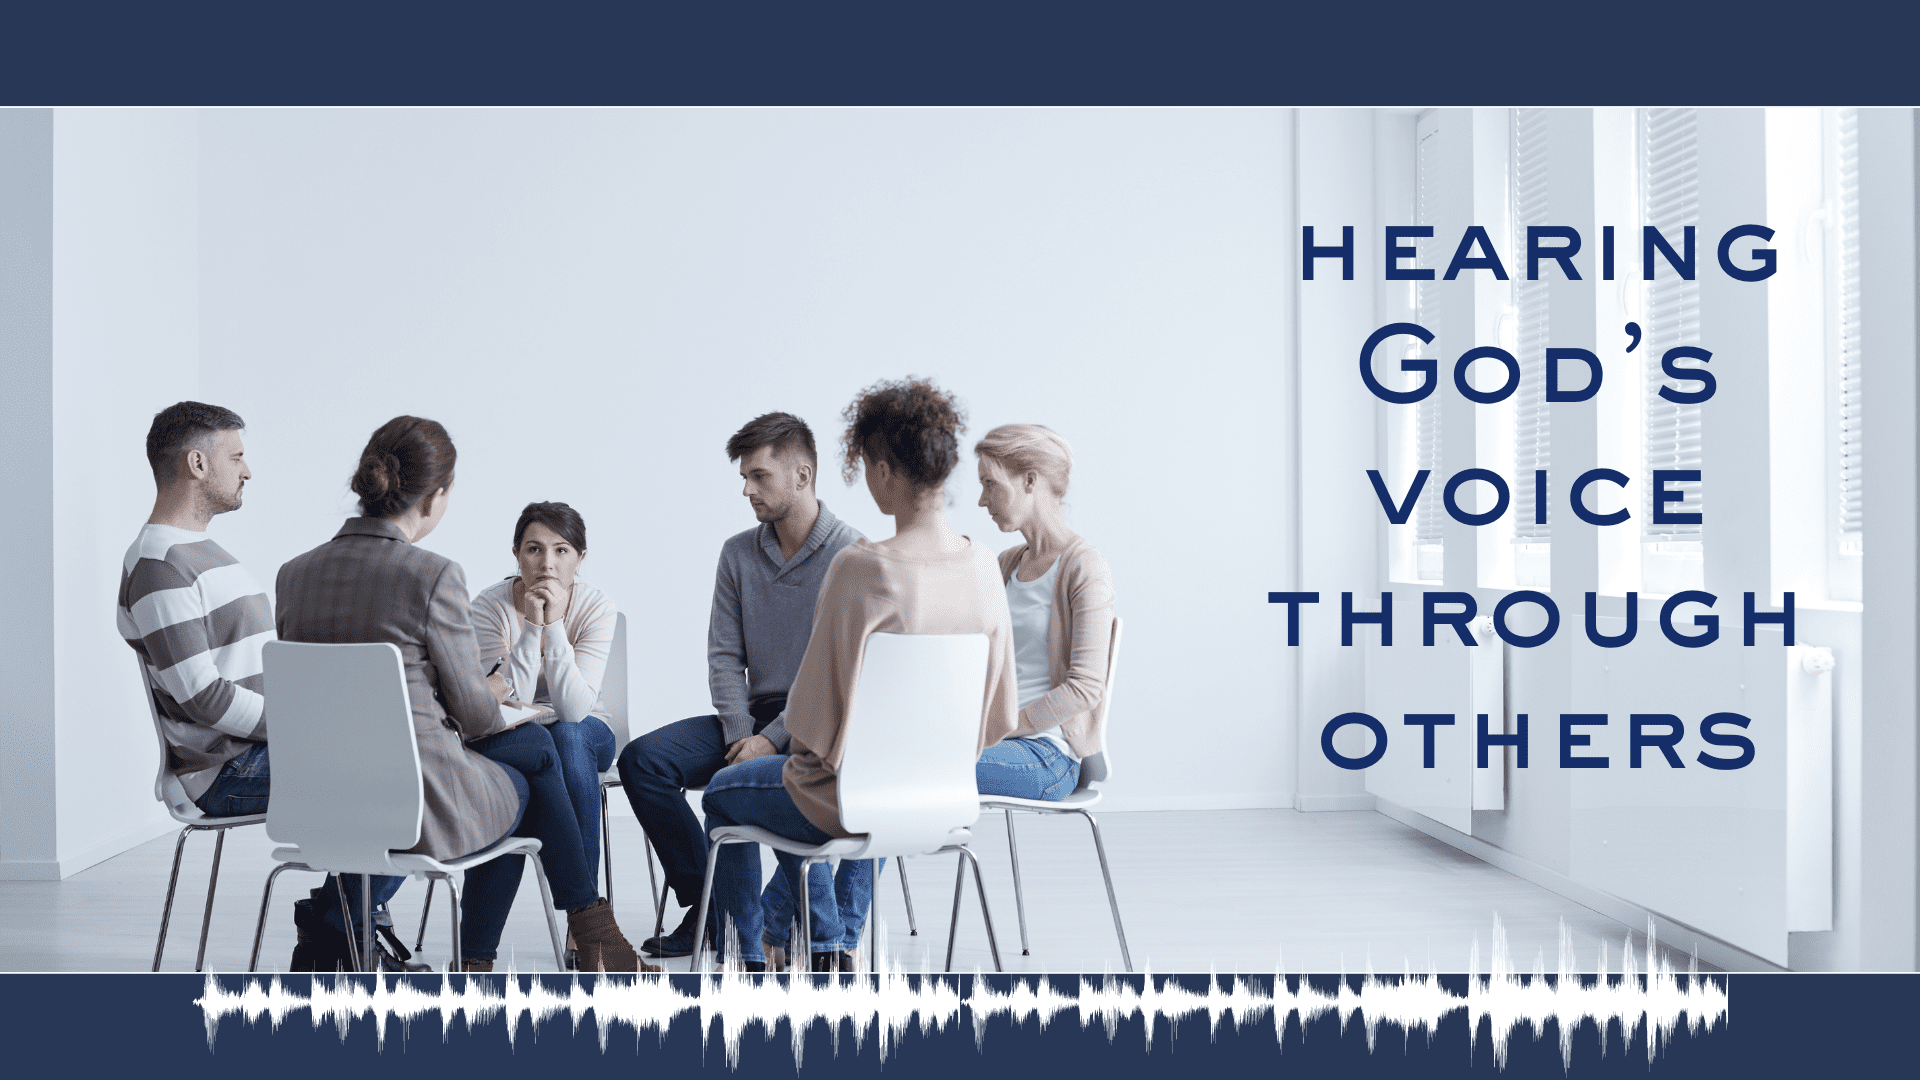 Hearing God's Voice Through Others